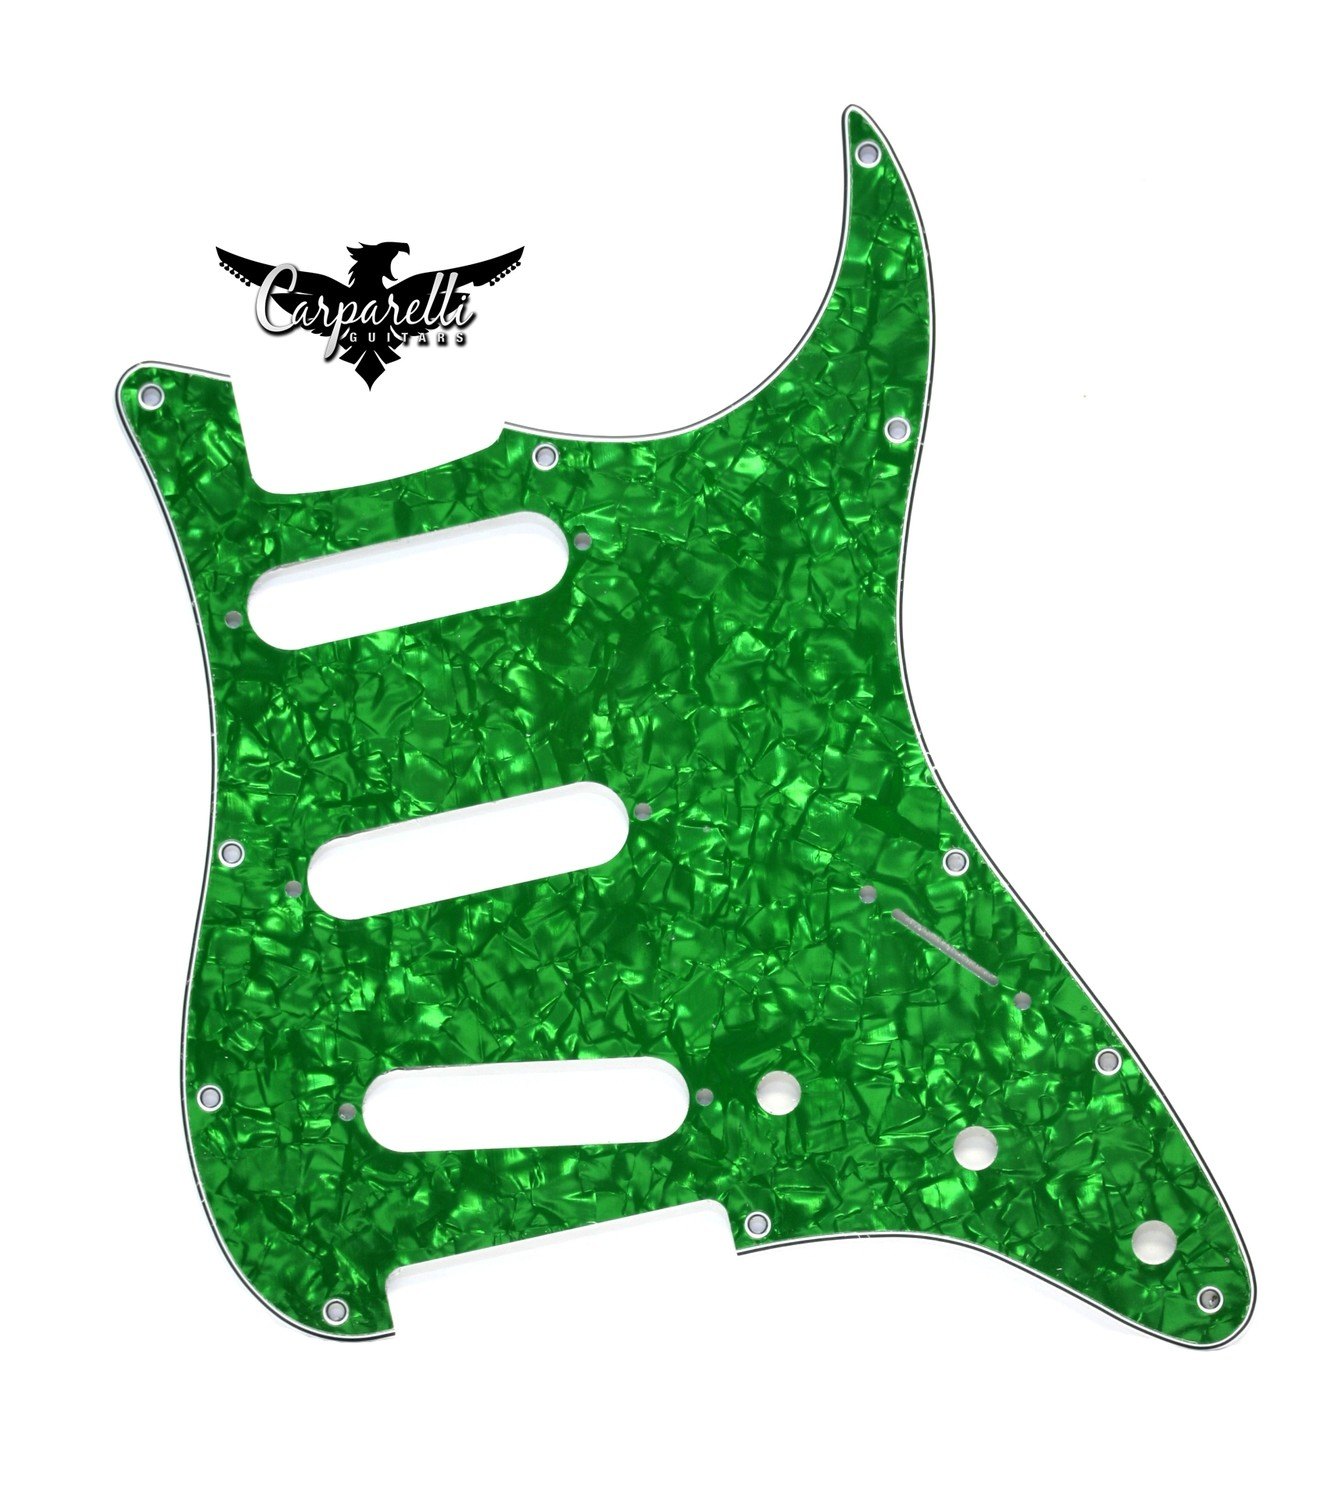 Carparelli SSS Strat® Pickguard 11 Holes 3 Ply Pearloid Green